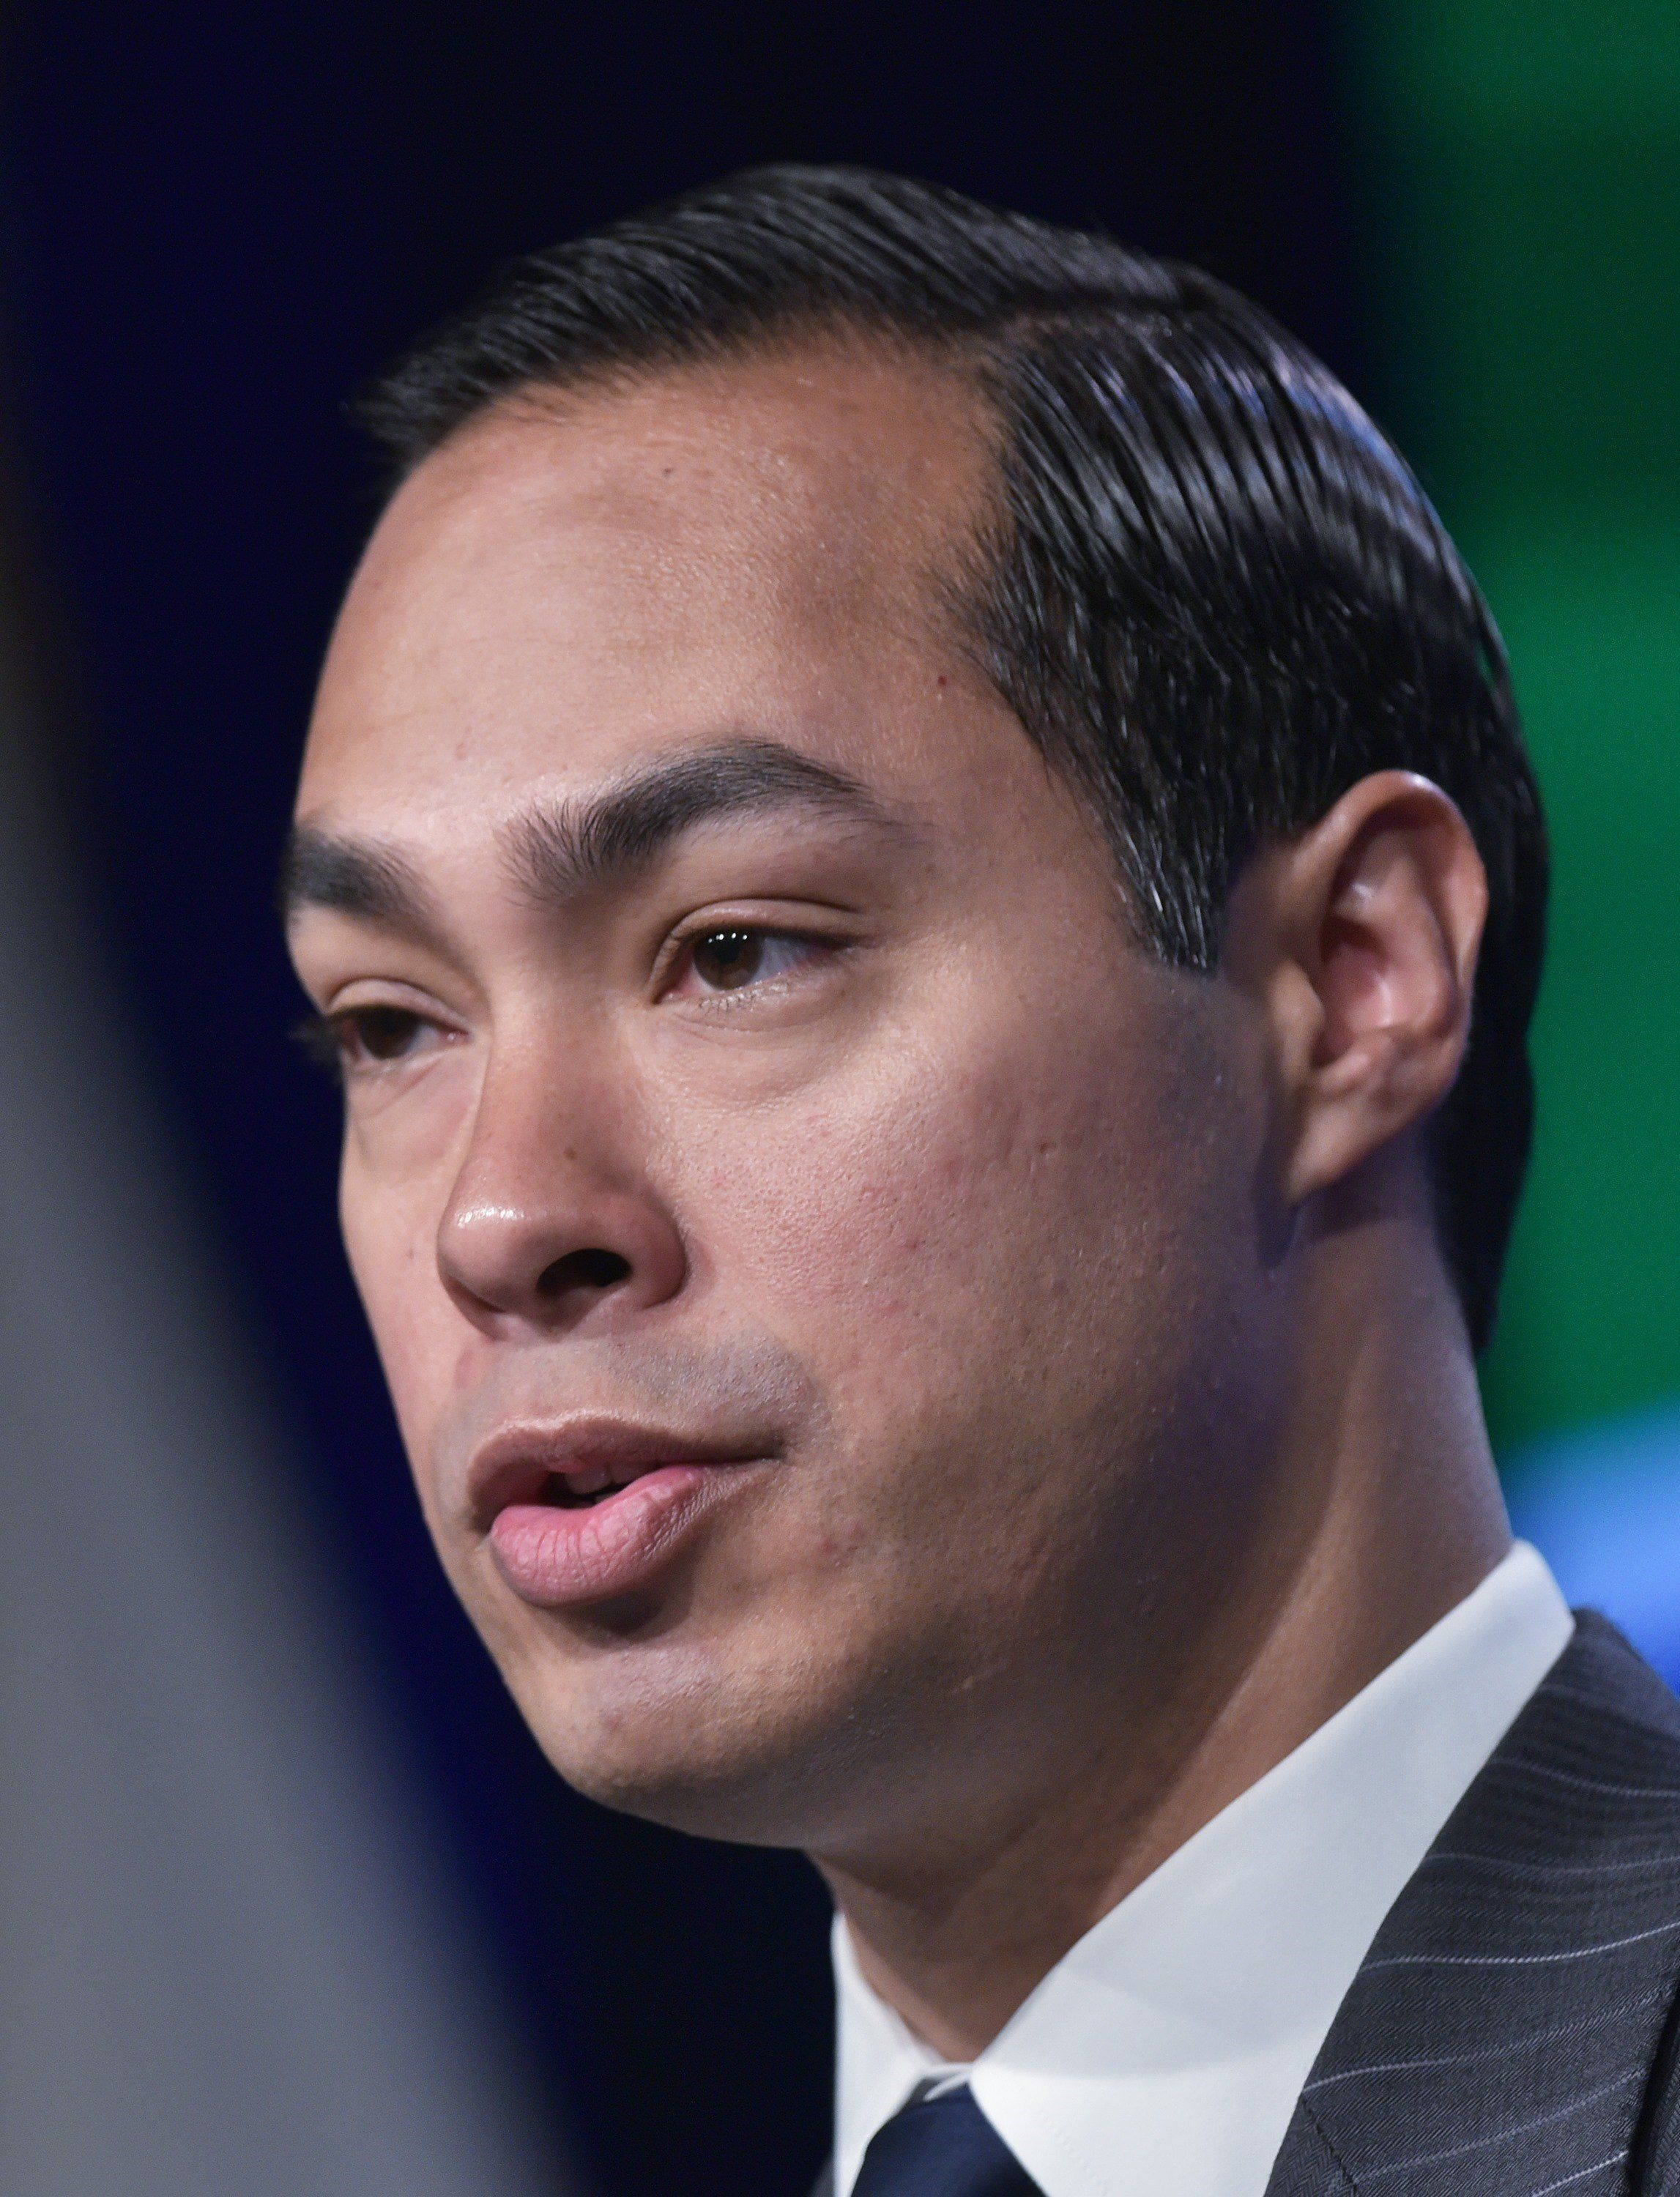 Housing and Urban Development Secretary Julian Castro briefs reporters on the progress of long-term disaster recovery efforts 10 years ater Hurricane Katrina on August 18, 2015 at the Department of Housing and Urban Development in Washington, DC. On August 29, 2005, Hurricane Katrina slammed into the Gulf Coast of the United States, forcing more than a million people from their homes and tragically taking more than 1,800 lives.  Katrina remains the most devastating and costliest natural disaster in our nations history.  AFP PHOTO/MANDEL NGAN        (Photo credit should read MANDEL NGAN/AFP/Getty Images)